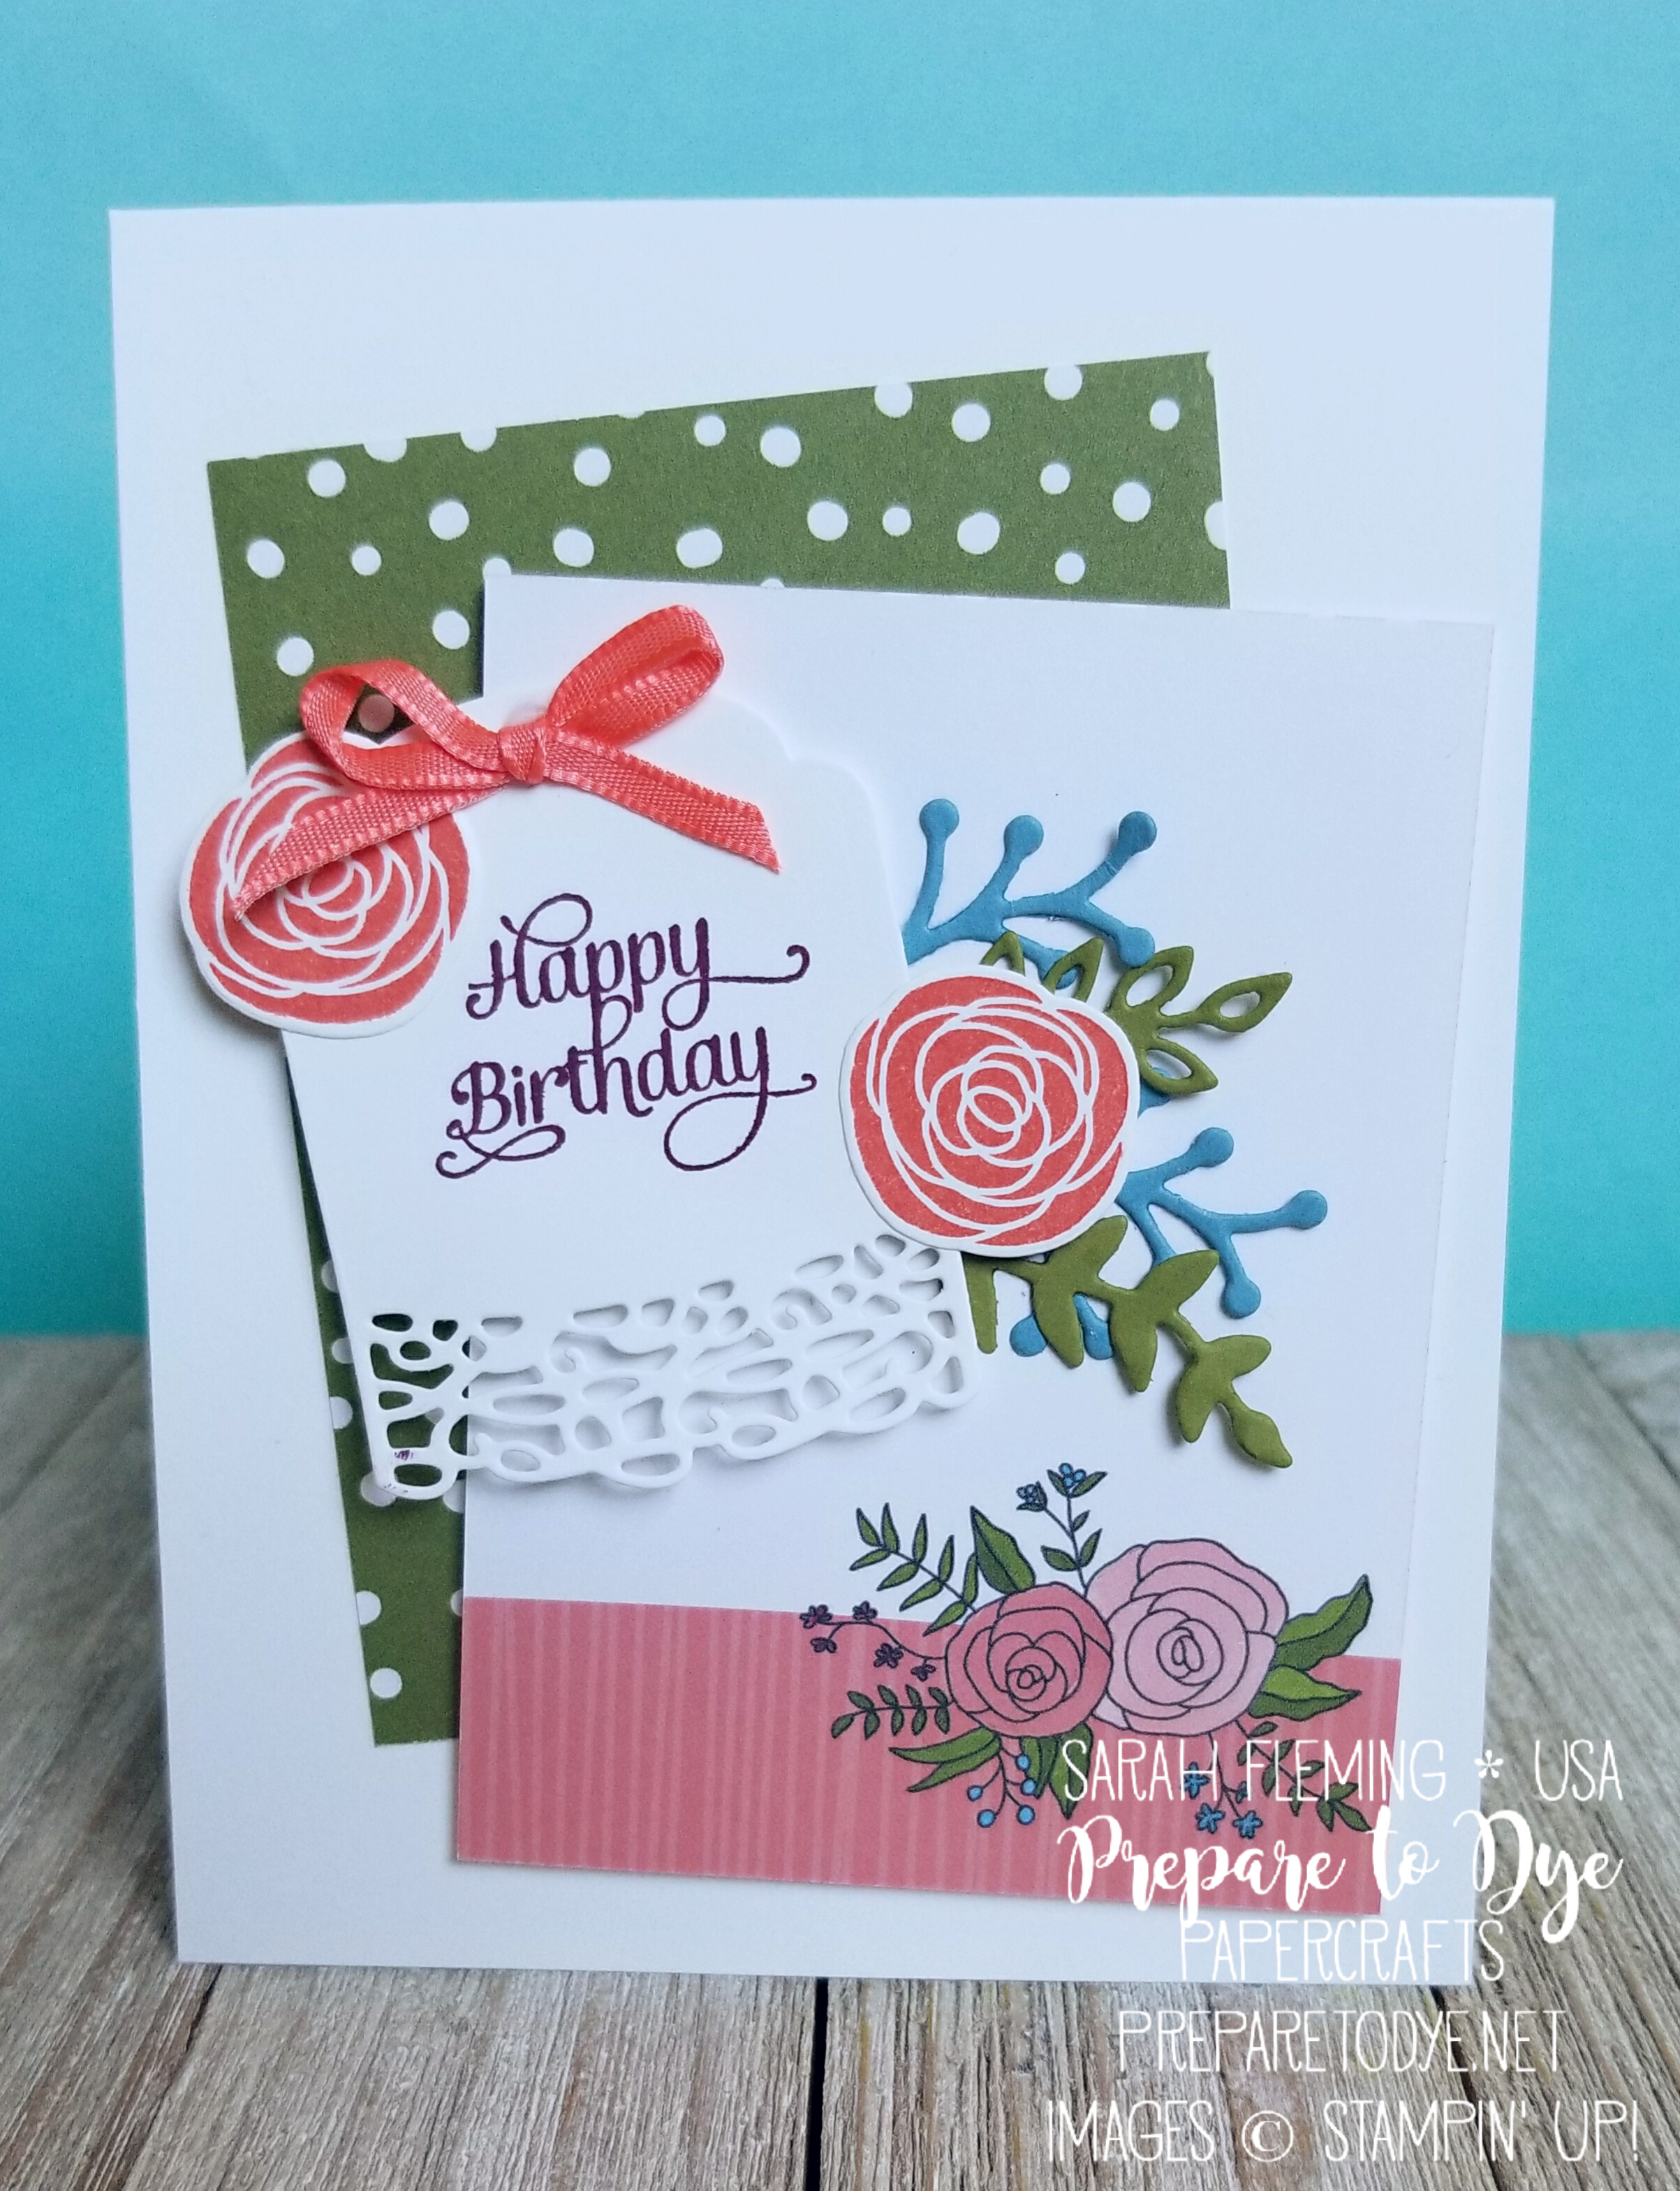 Cake Soiree with Sweet Cake framelits, Sweet Soiree Memories & More card pack - handmade birthday card - Sarah Fleming - Prepare to Dye Papercrafts